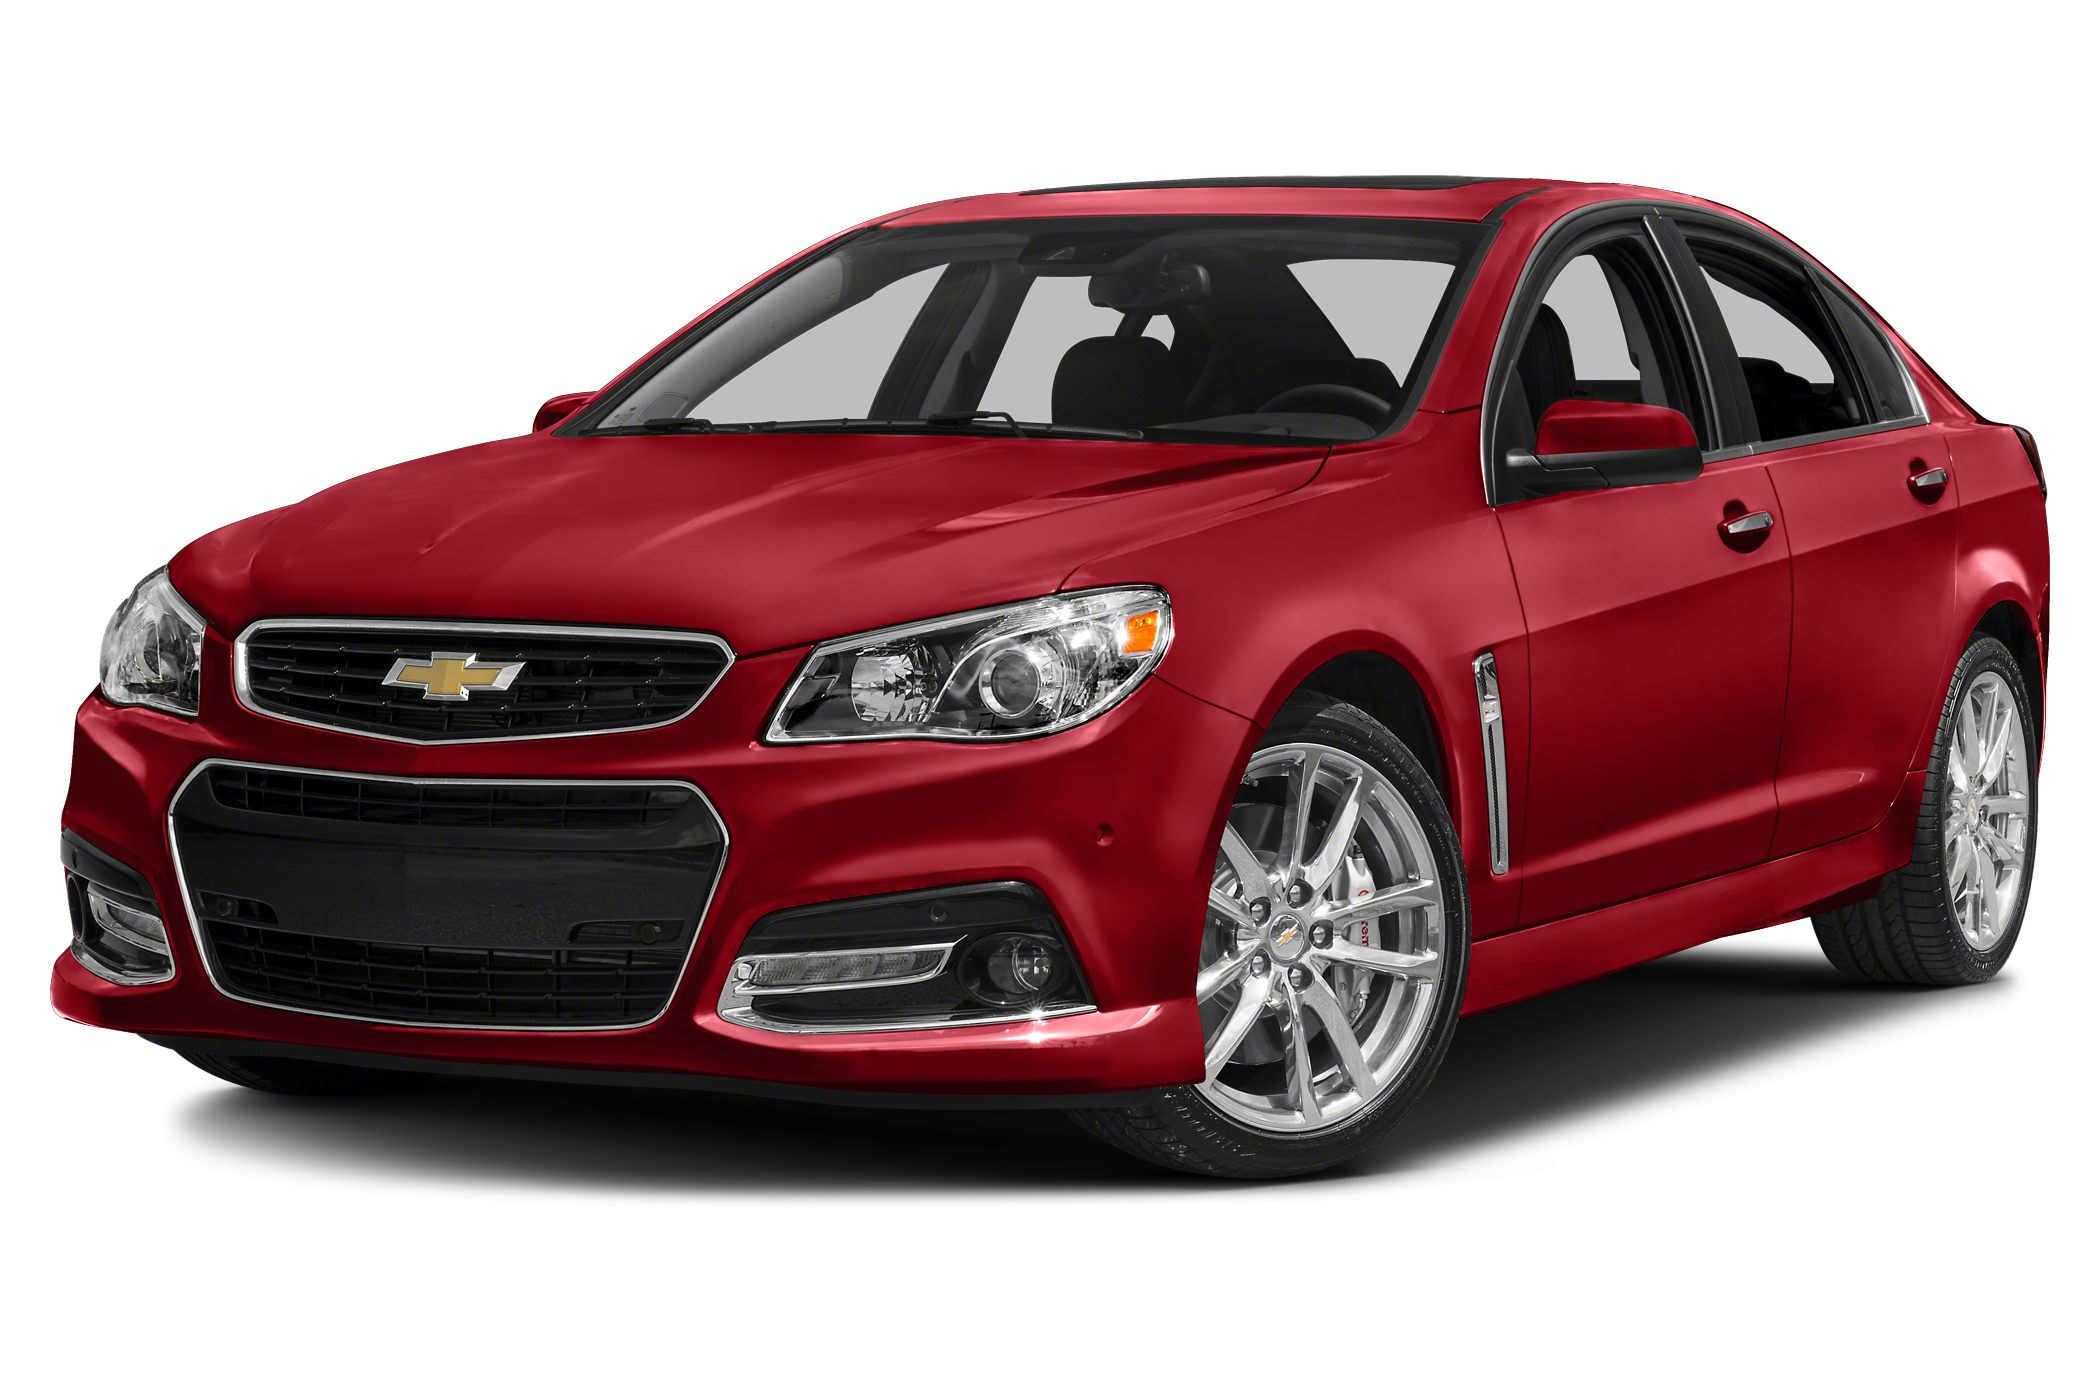 2015 Chevrolet SS Base Sedan for sale in Inverness for $48,140 with 0 miles.